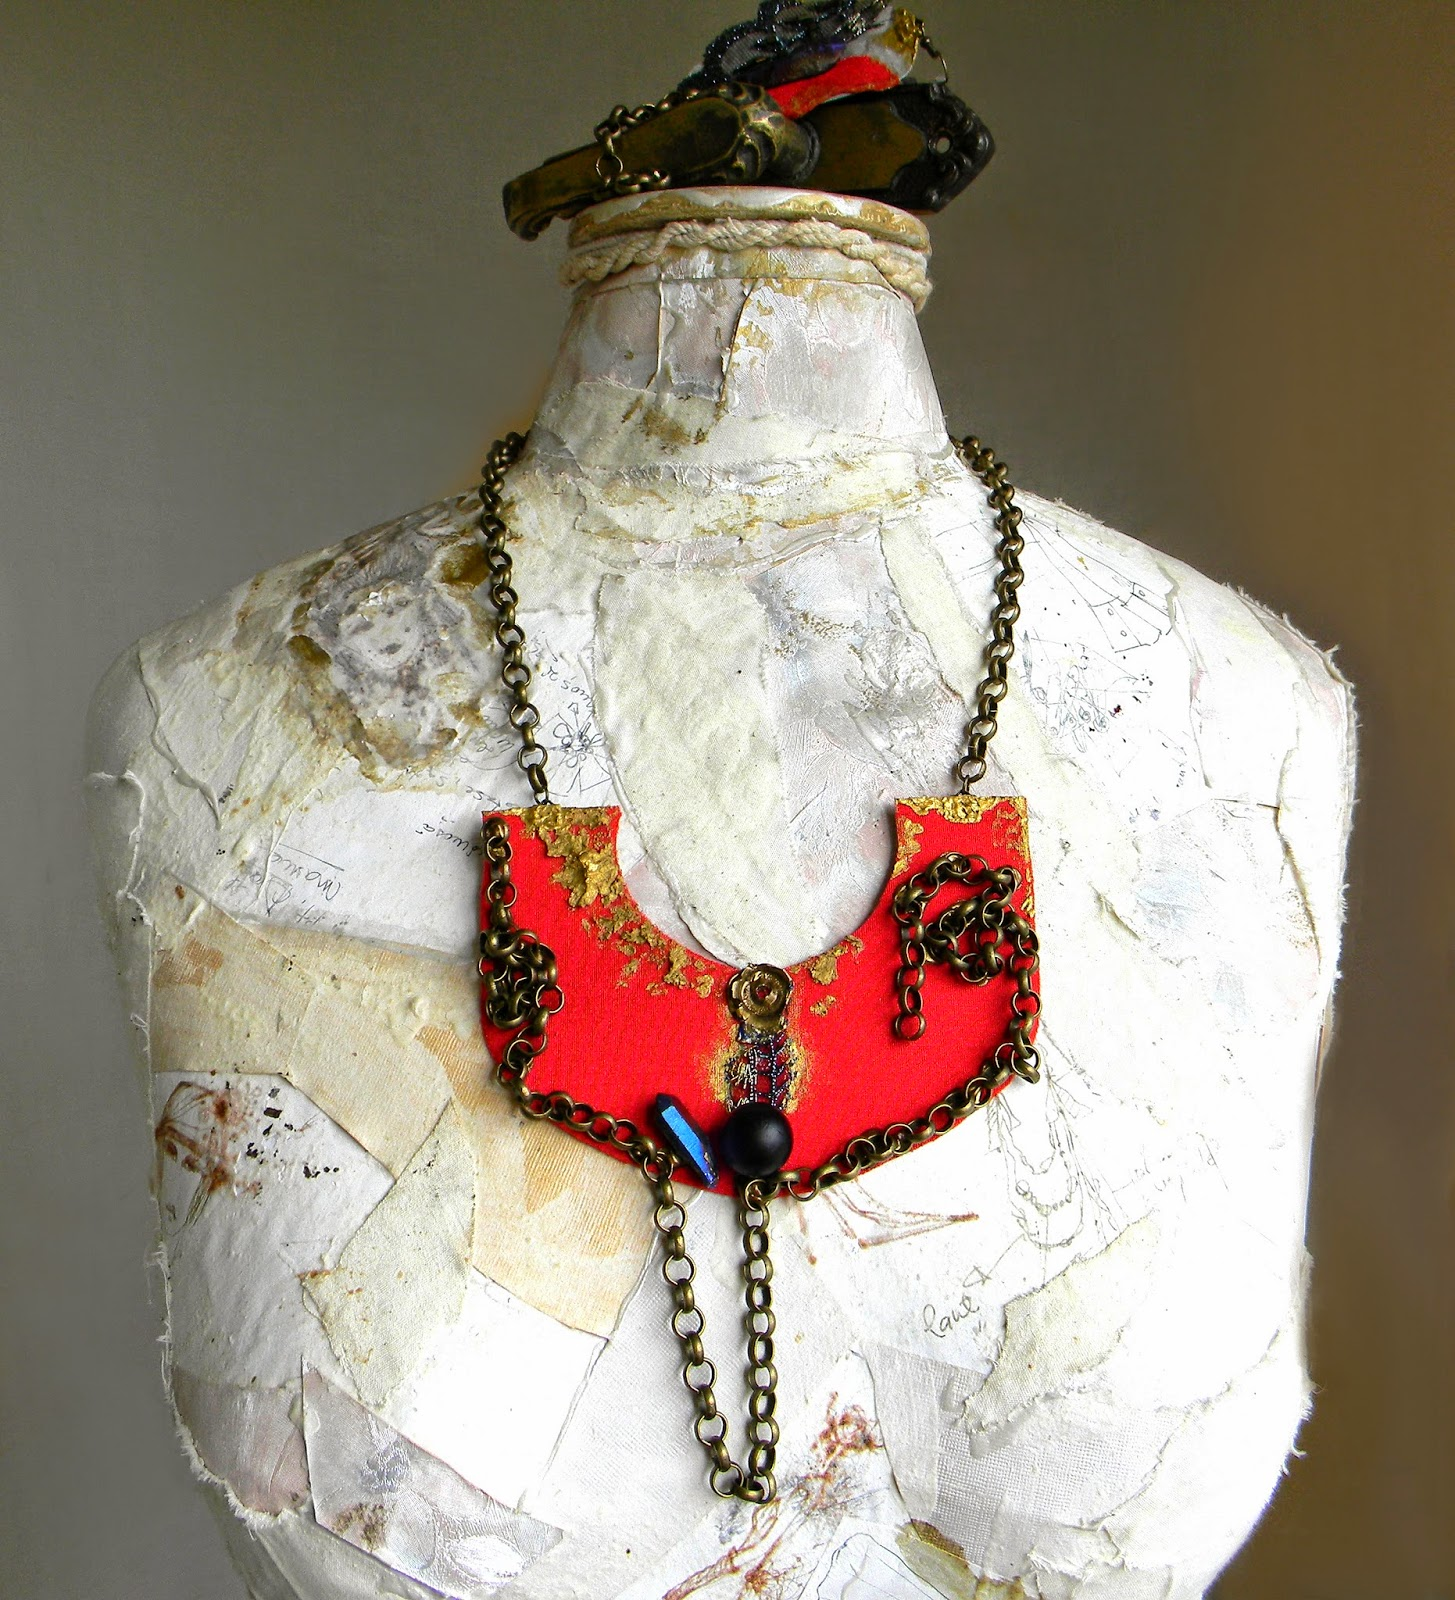 Statement Necklace Bib in Brilliant Red with Crystal Quartz Point and Bronze Chain